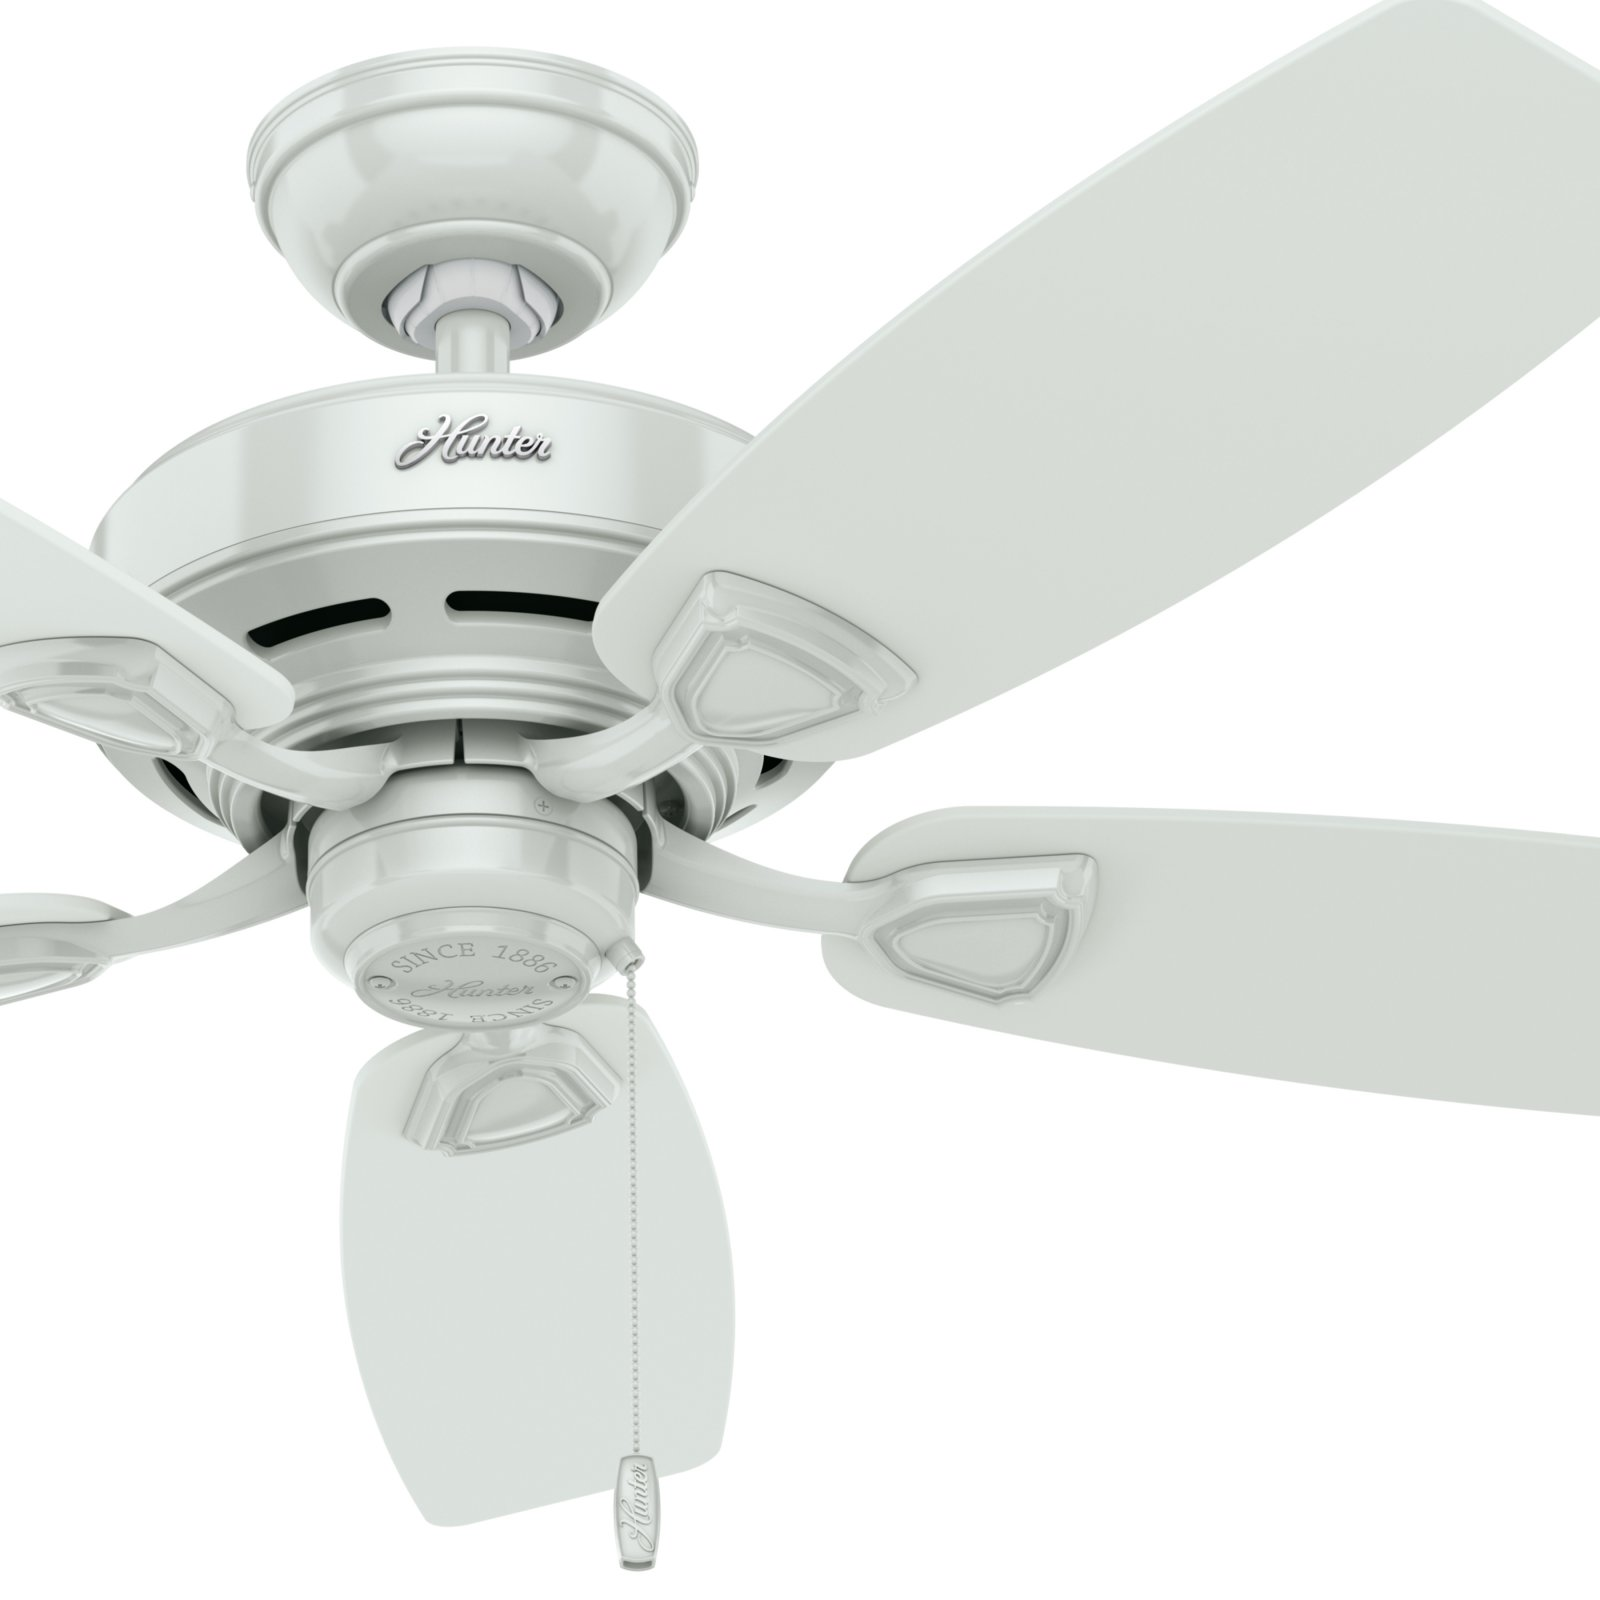 Hunter Fan 48 Outdoor Damp Rated Ceiling Fan in White with 5 White Plastic Blades